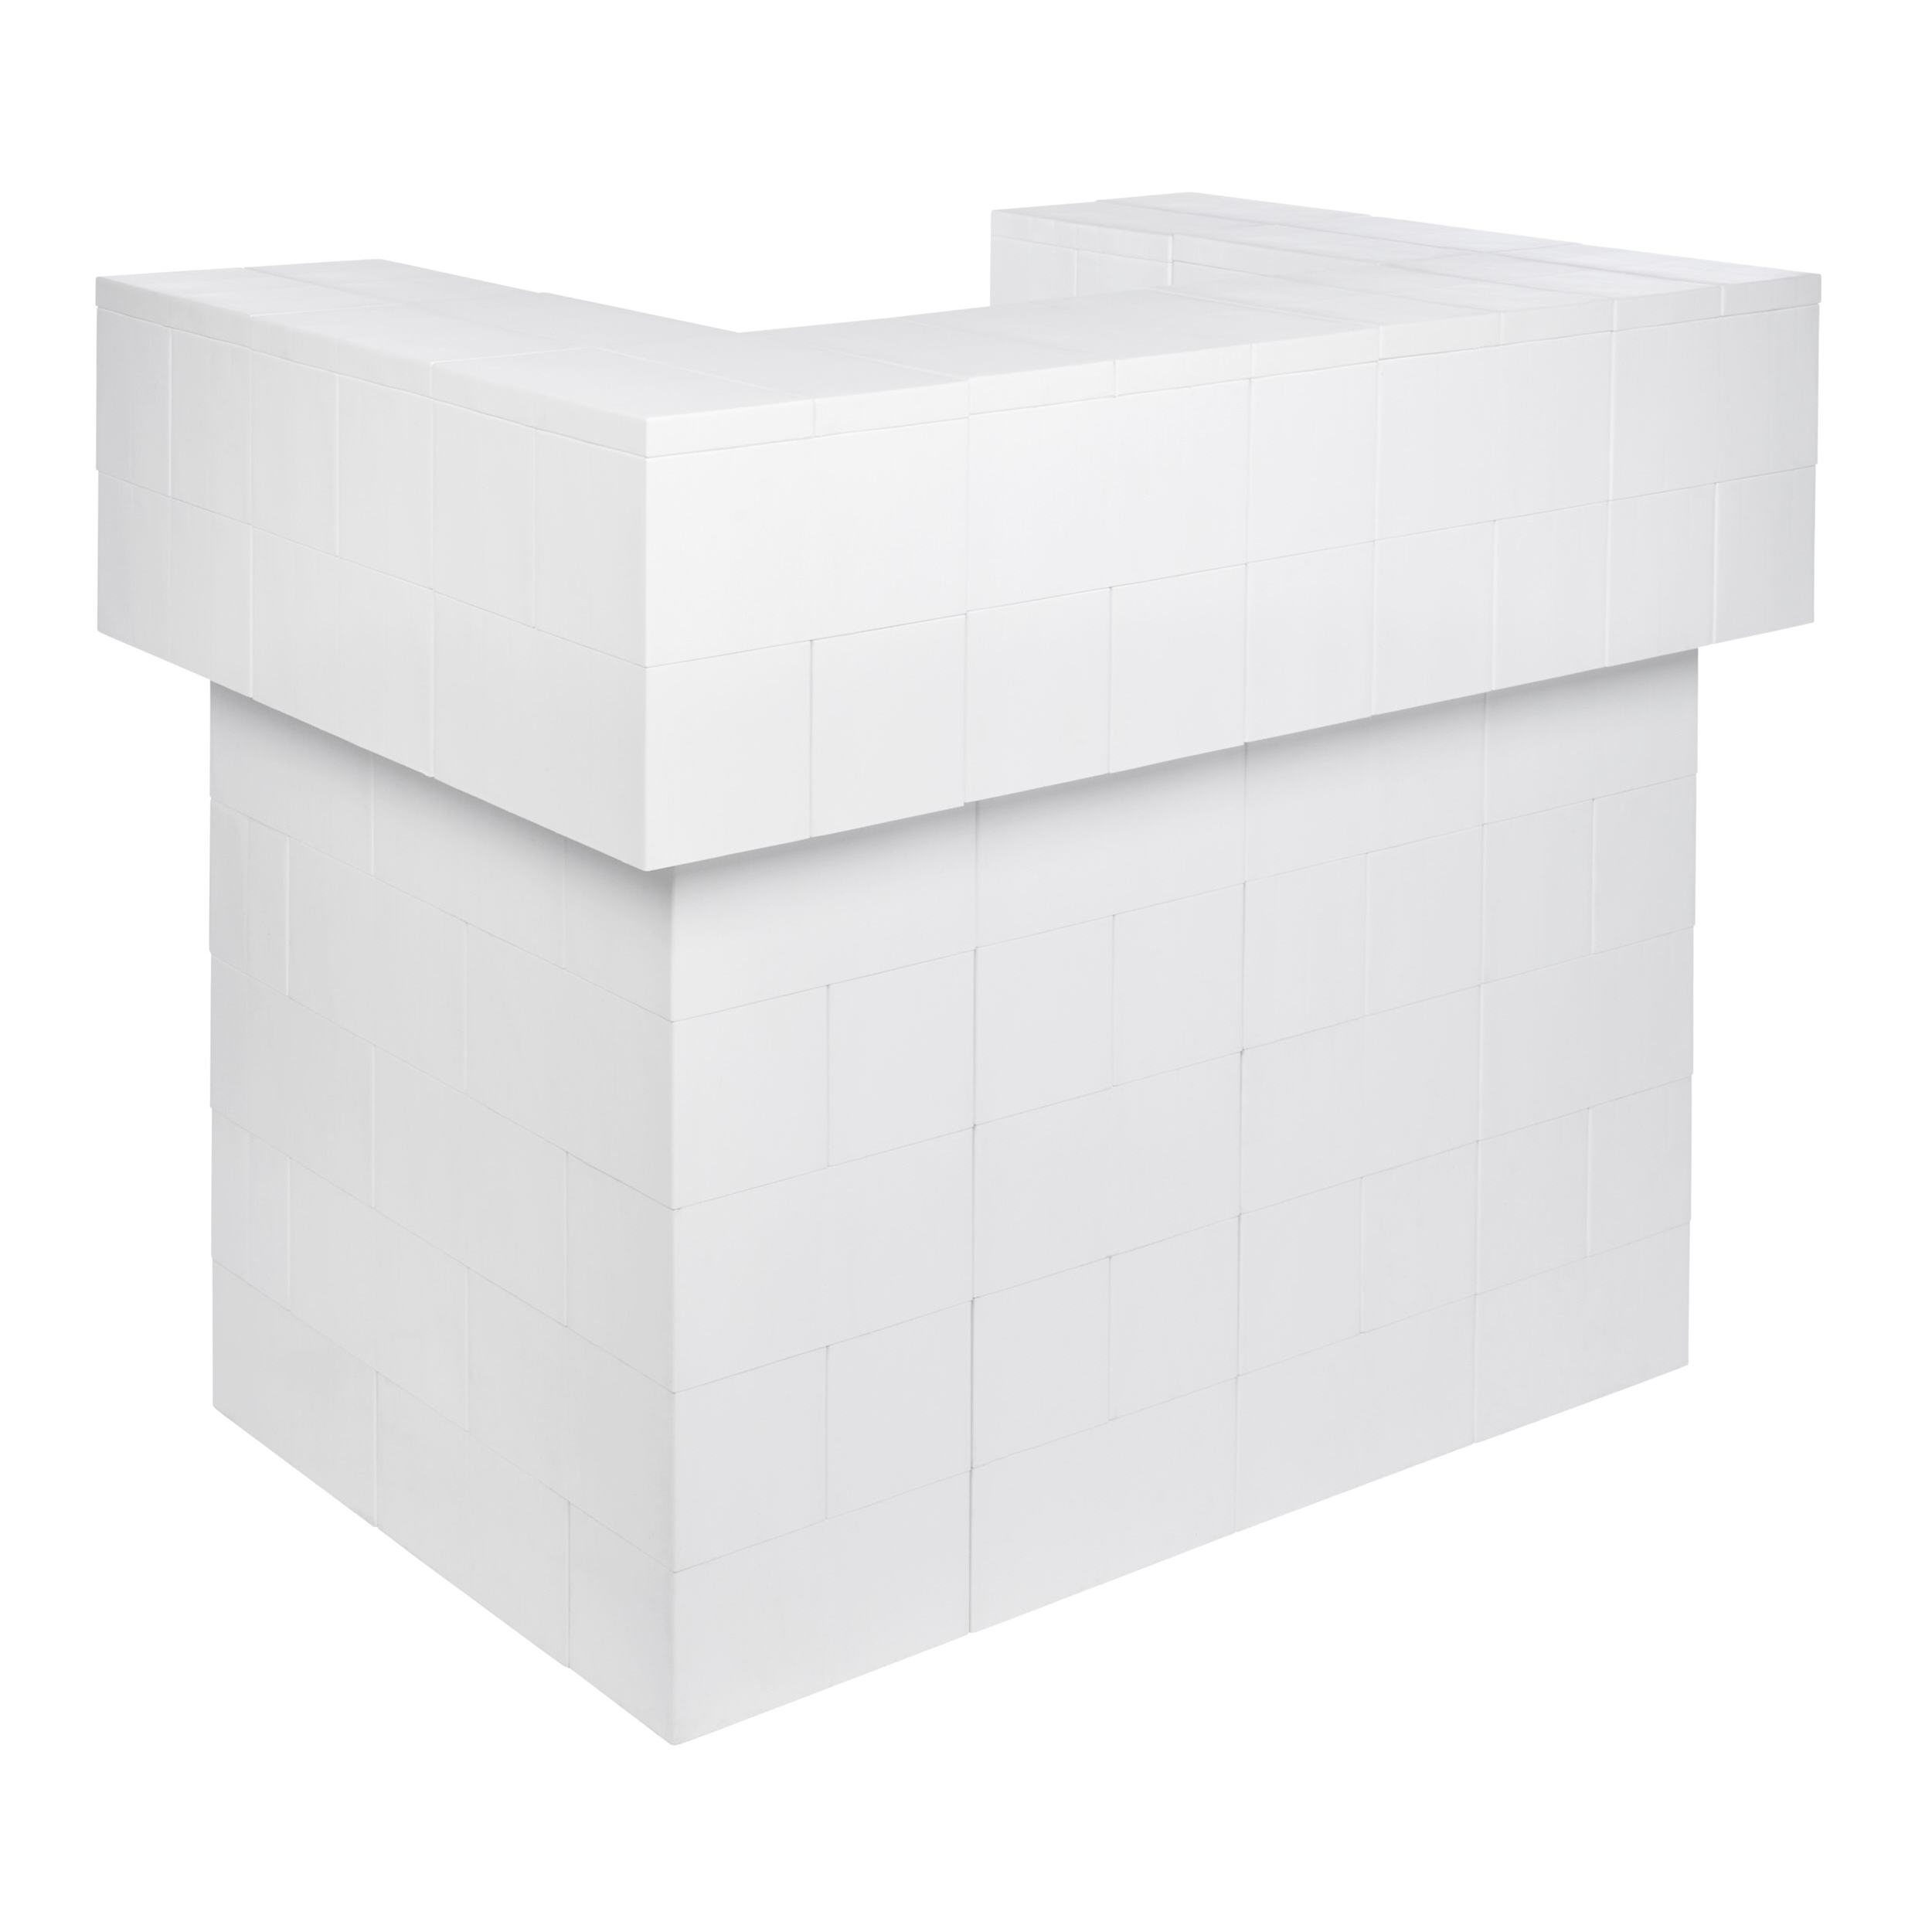 """4ft """"Full 2 Layer Cantilever"""" Bar / Counter"""